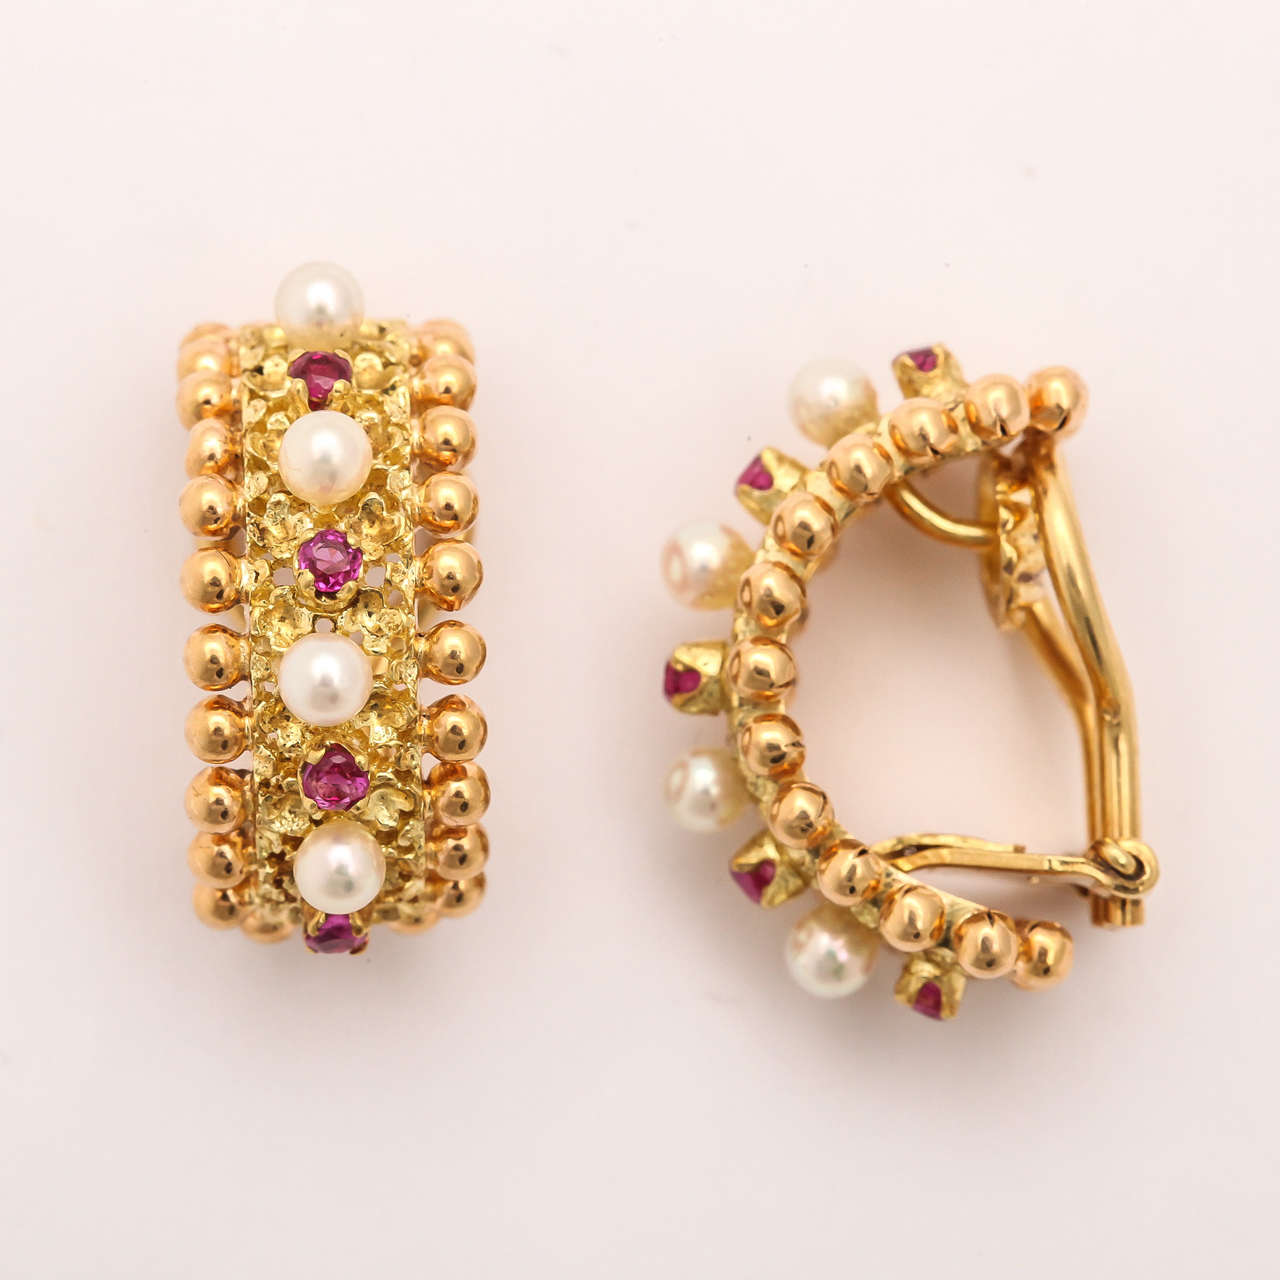 Very Luxe Hoop Earrings Set In 18kt Yellow Gold G Pink Rubies Alternating